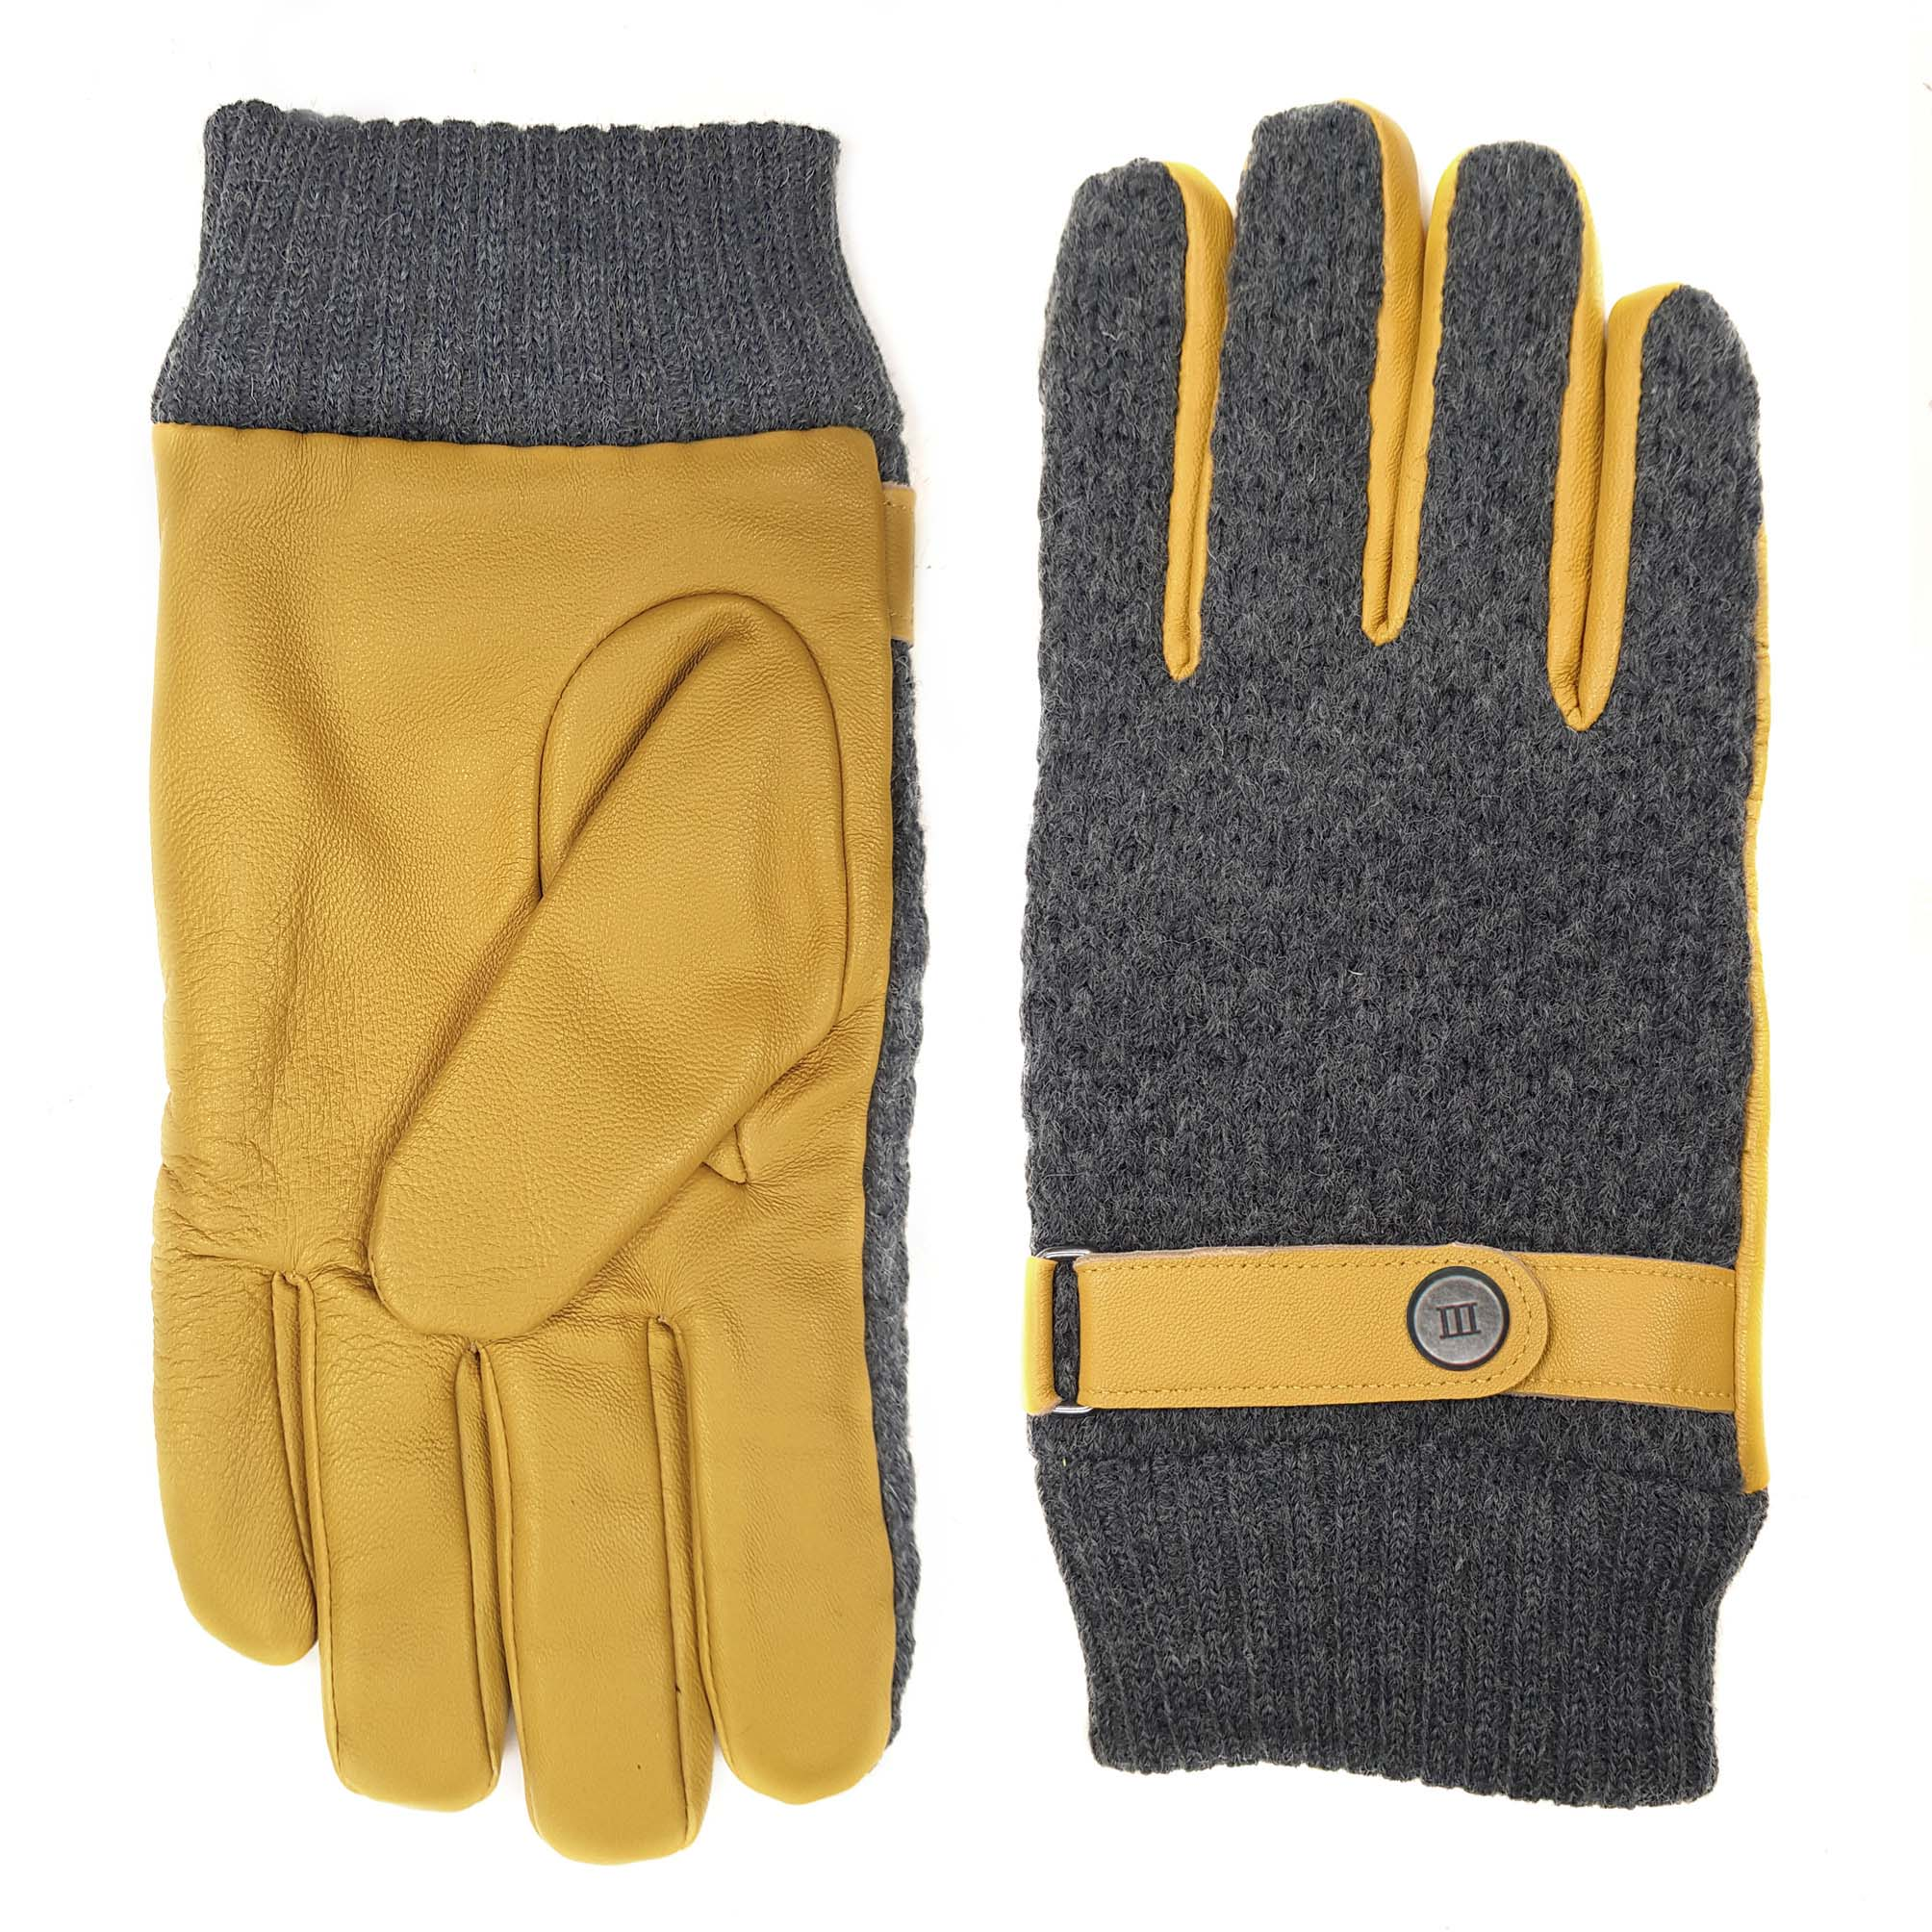 Jorian | Knitted and leather gloves ochre yellow